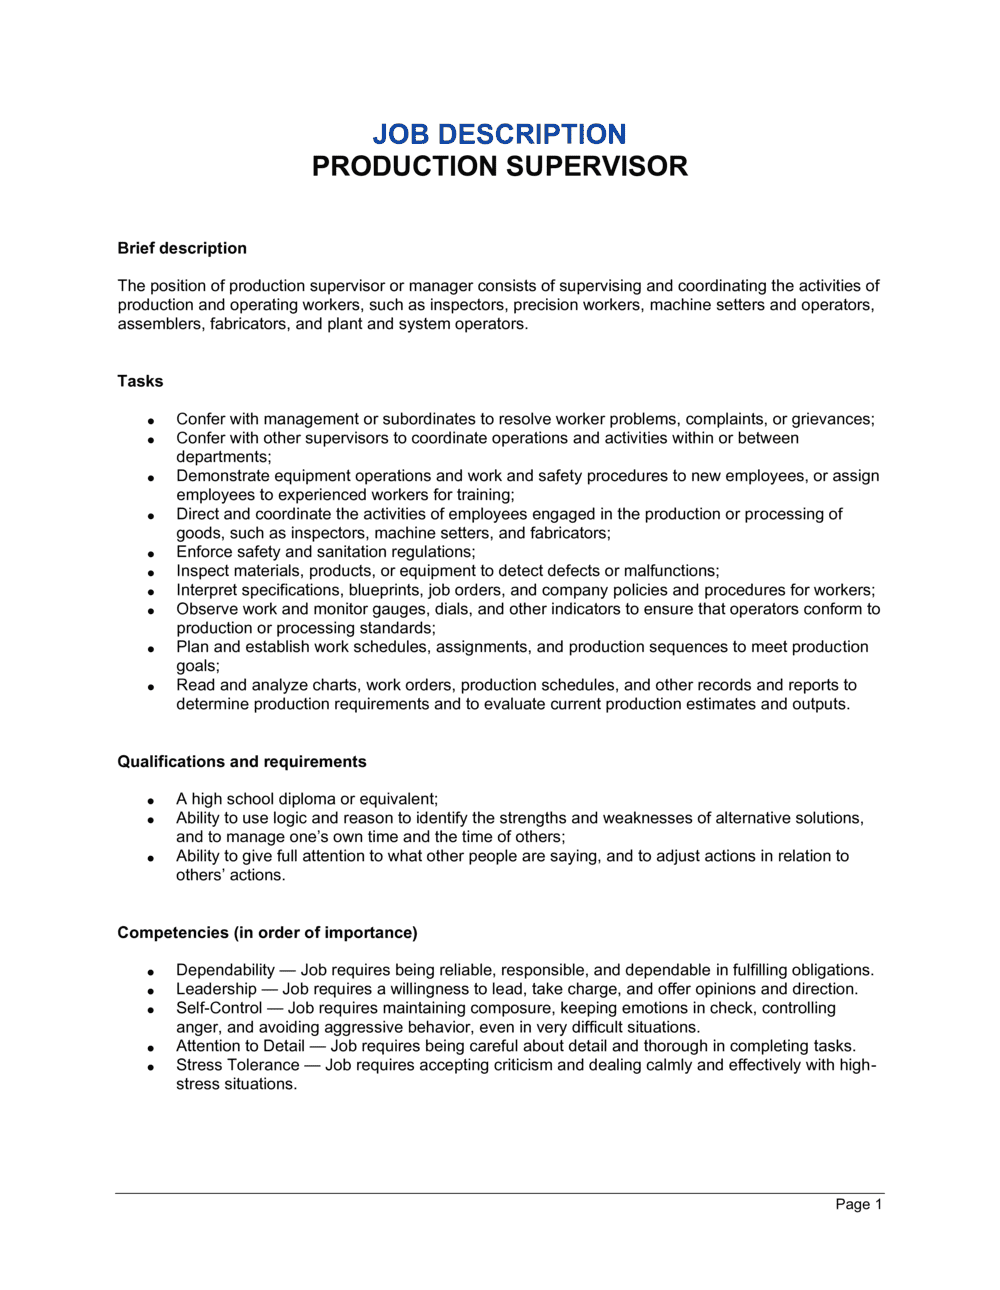 Business-in-a-Box's Production Supervisor Job Description Template